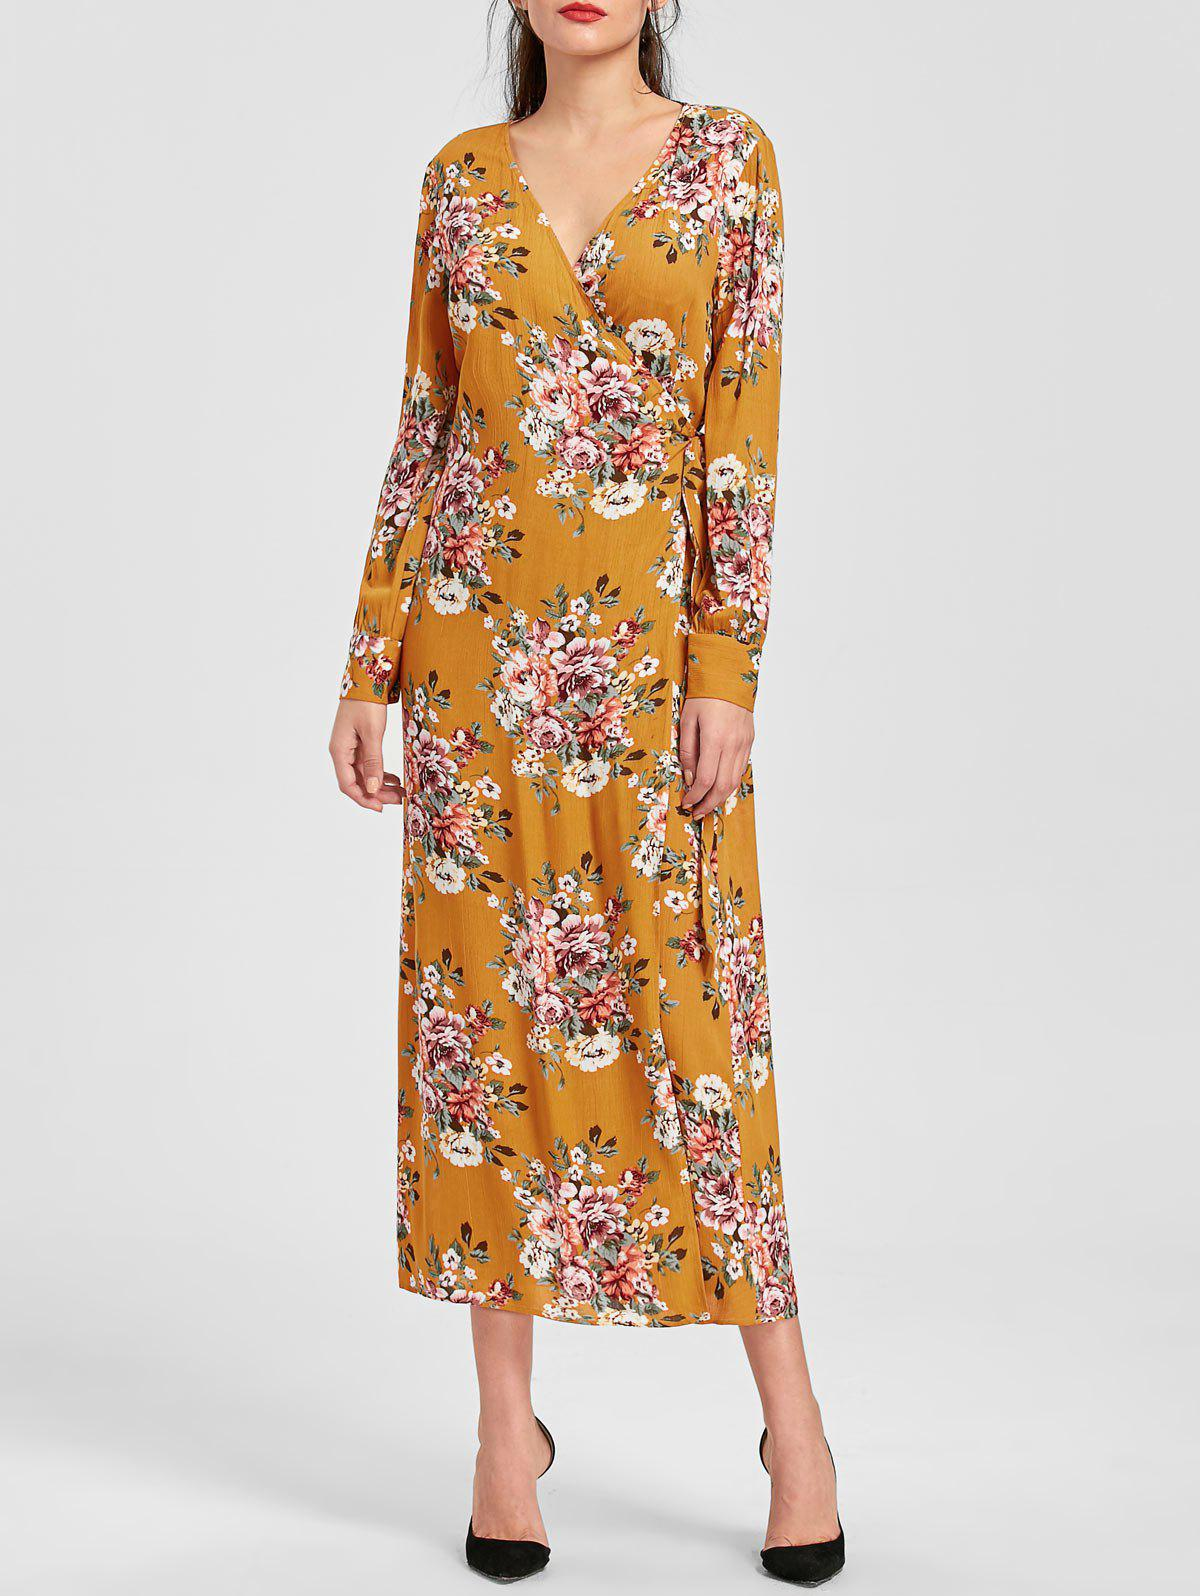 Long Sleeve Floral Print Maxi Wrap Dress - EARTHY L